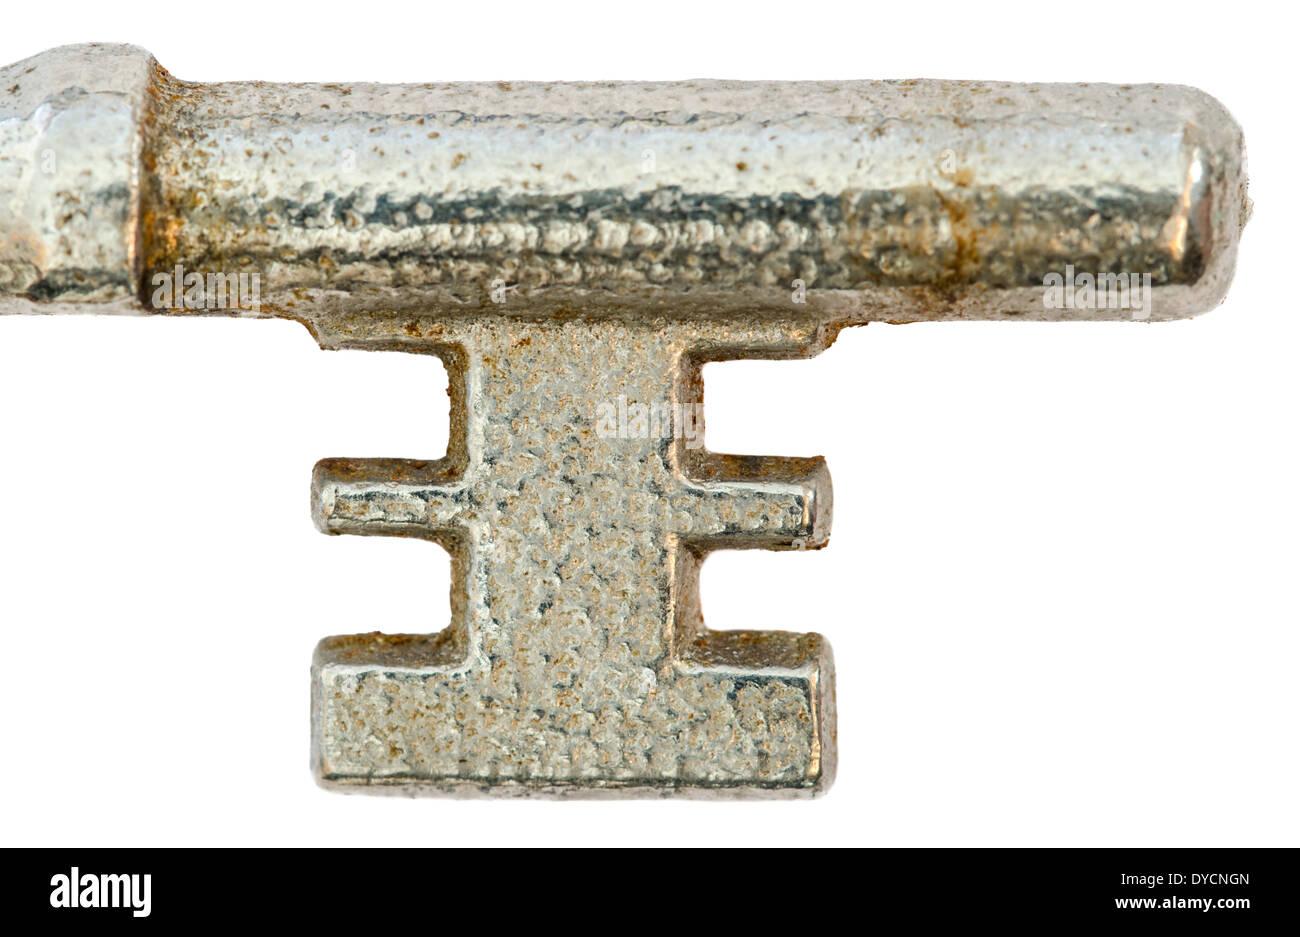 The shoulder, bit and post parts of an old dirty Mortise lock key. - Stock Image